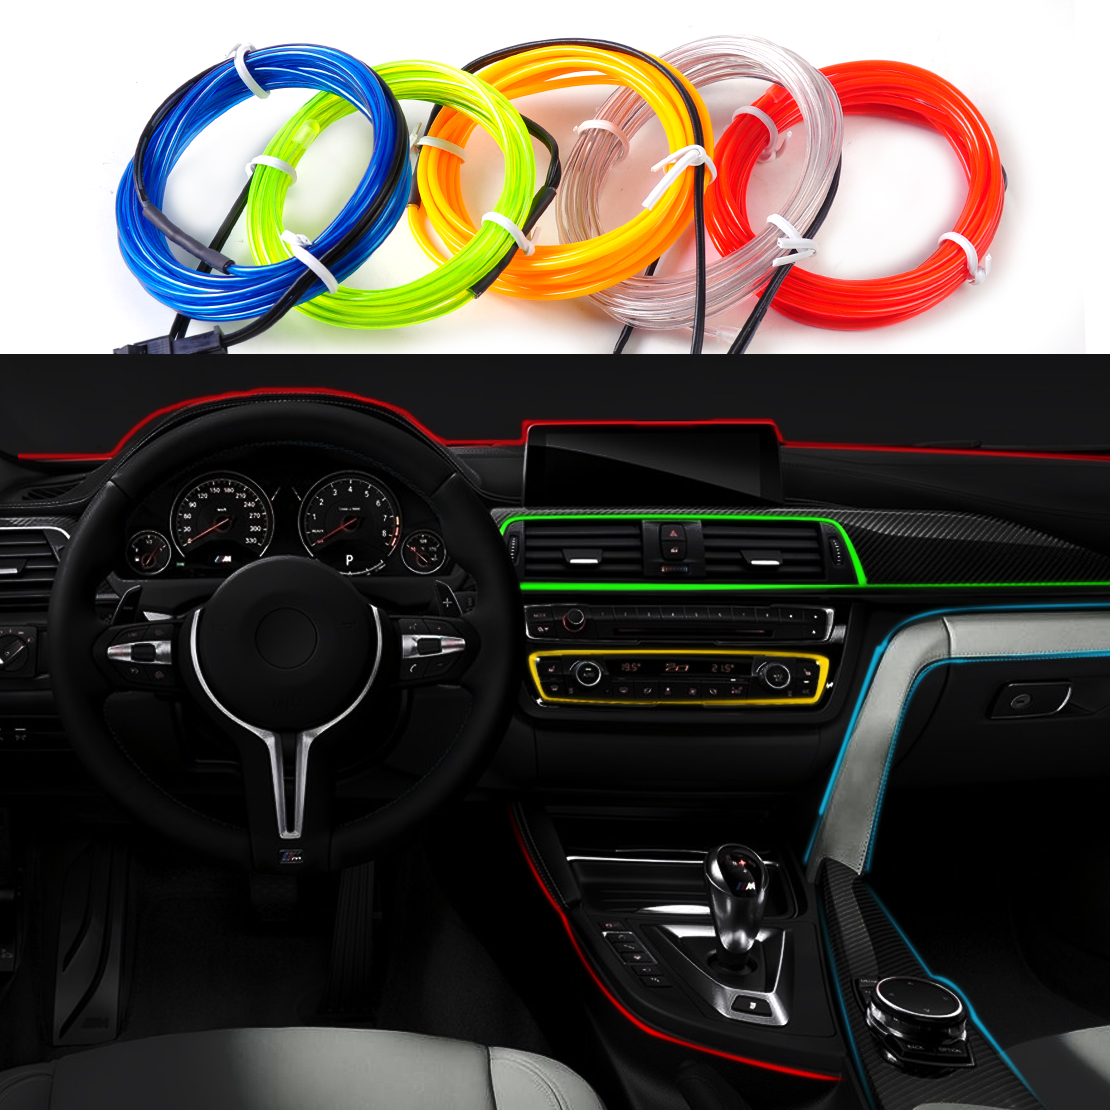 DWCX Car Interior 2m EL-Wire Flexible Decorative Atmosphere Cold Neon light Lamp Strip Tape with 12V DC Cigarette Lighter jurus hot sale led 1m 2m 3meters 5m neon light car decor lamp flexible el wire rope tube waterproof strip with 12v inverter